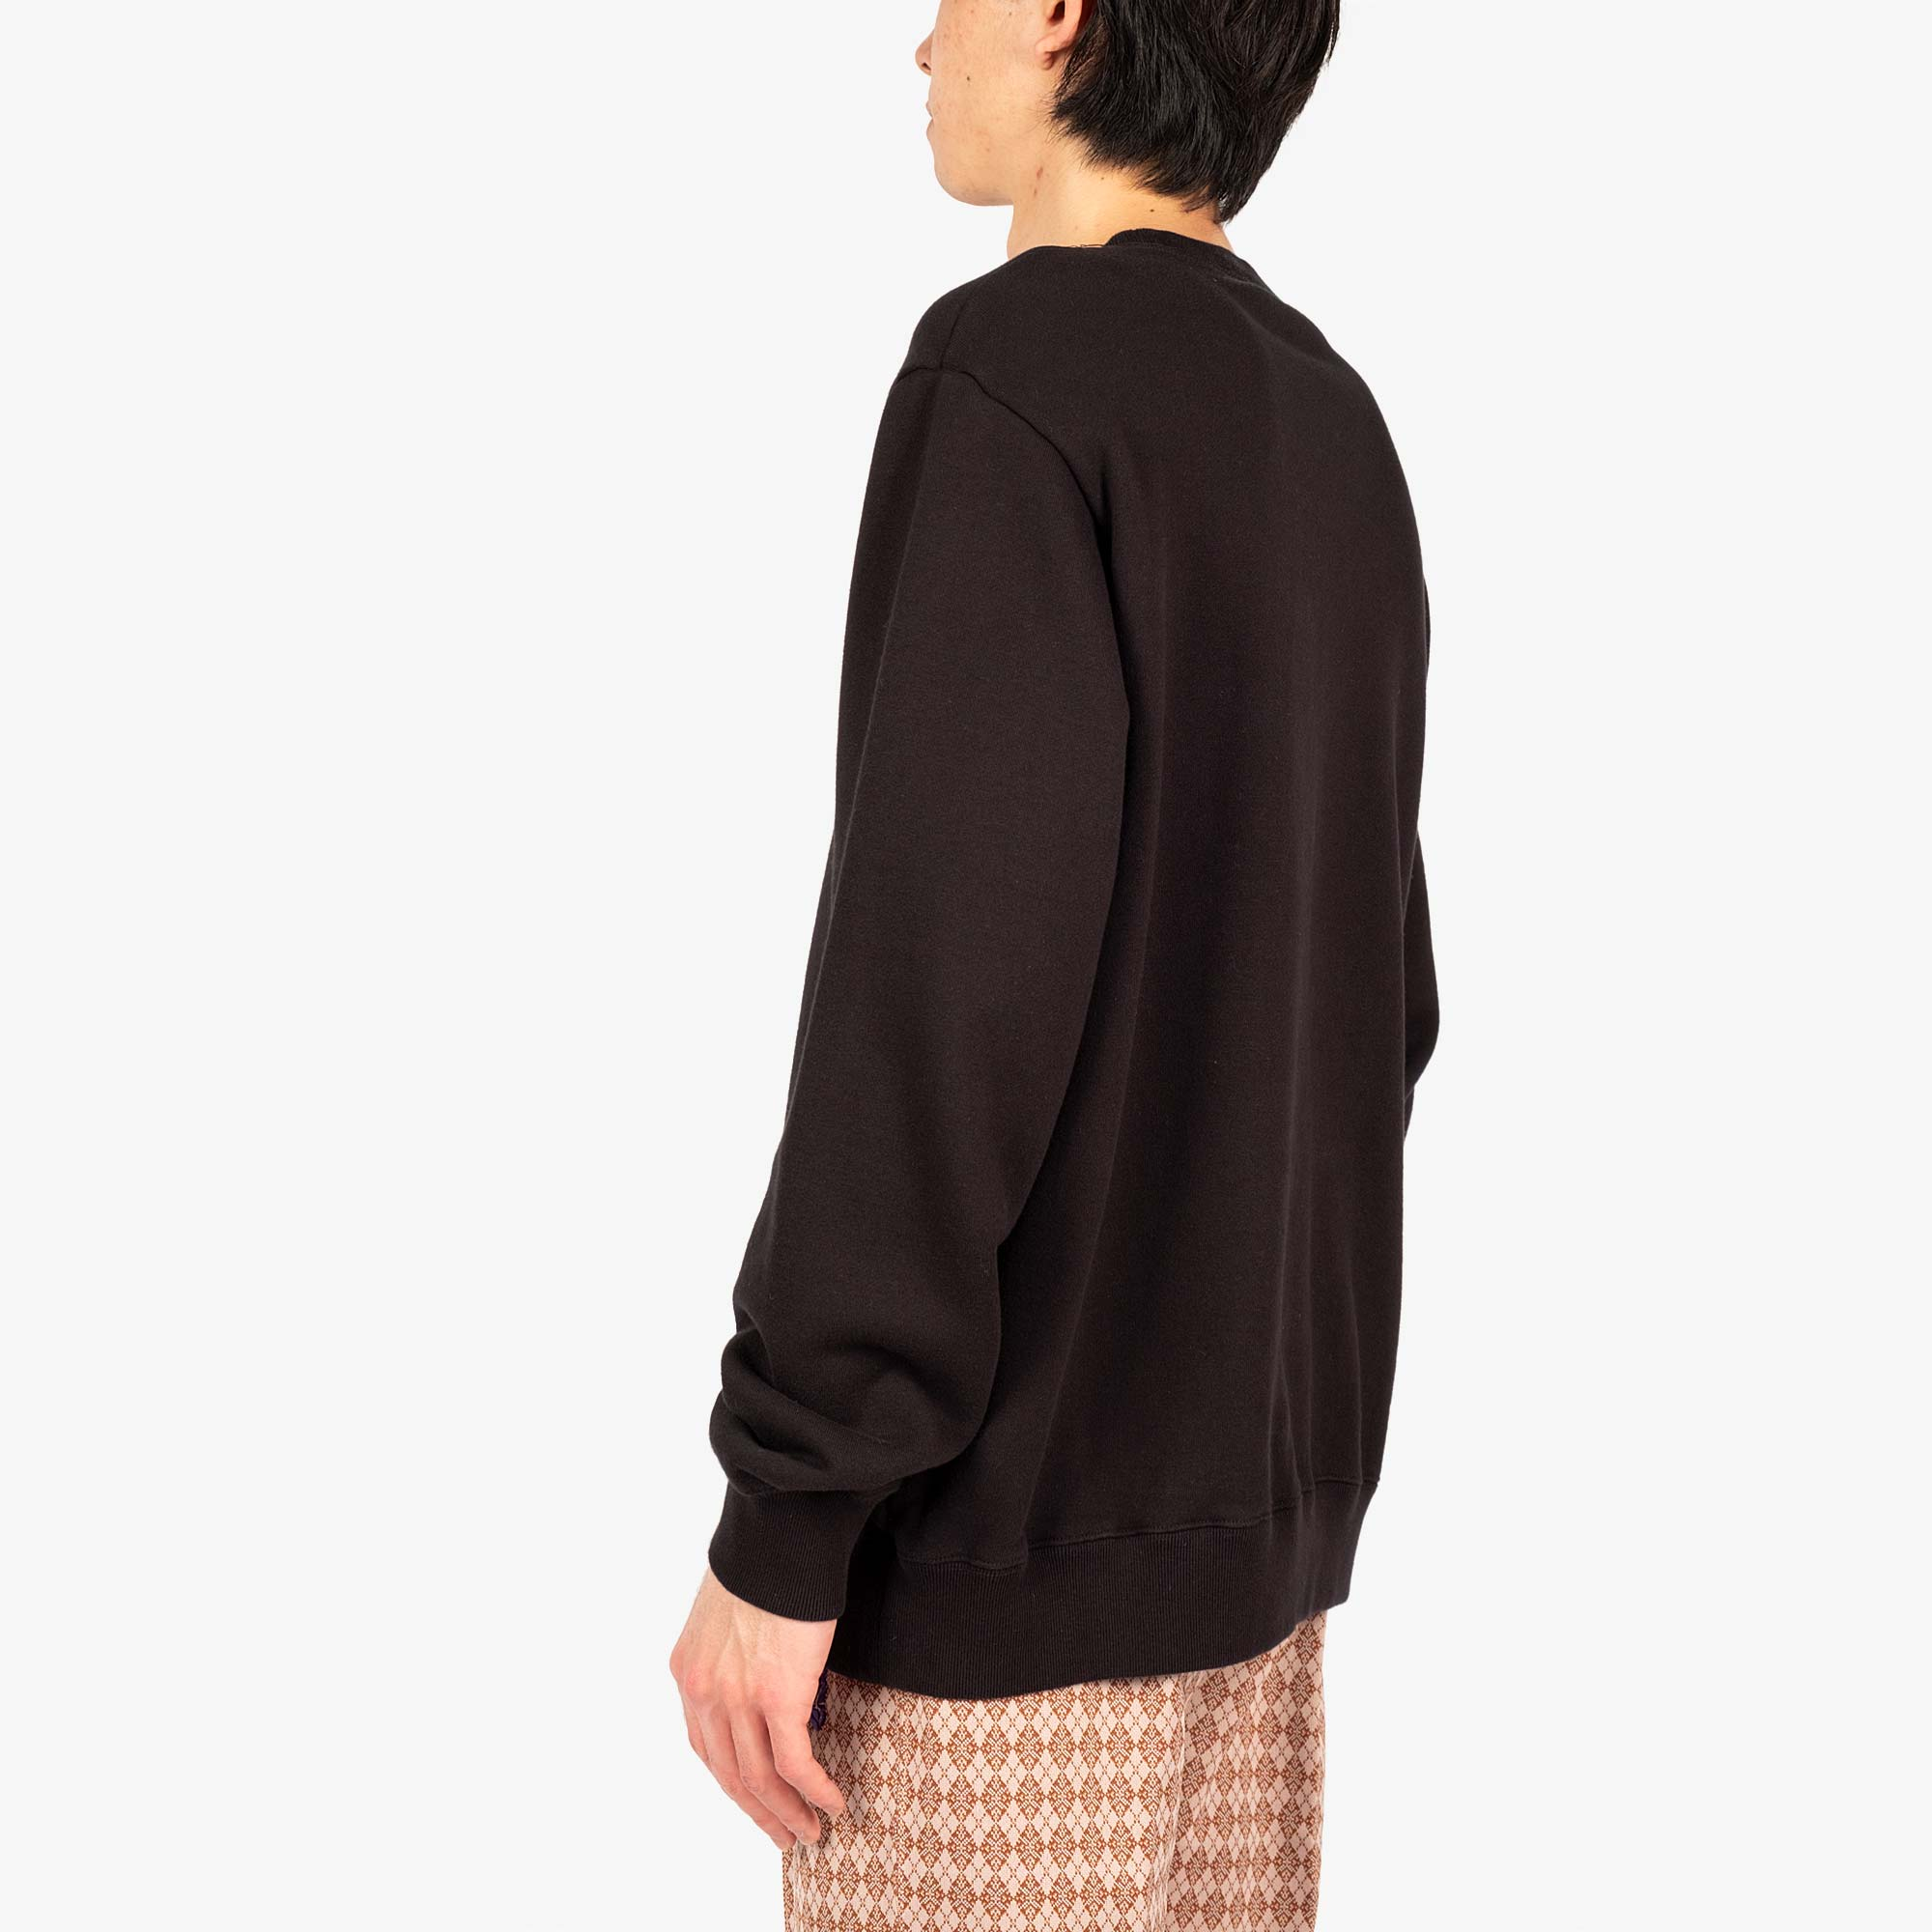 Undercover Painting Sweat UC2A4893-2 - Black 5